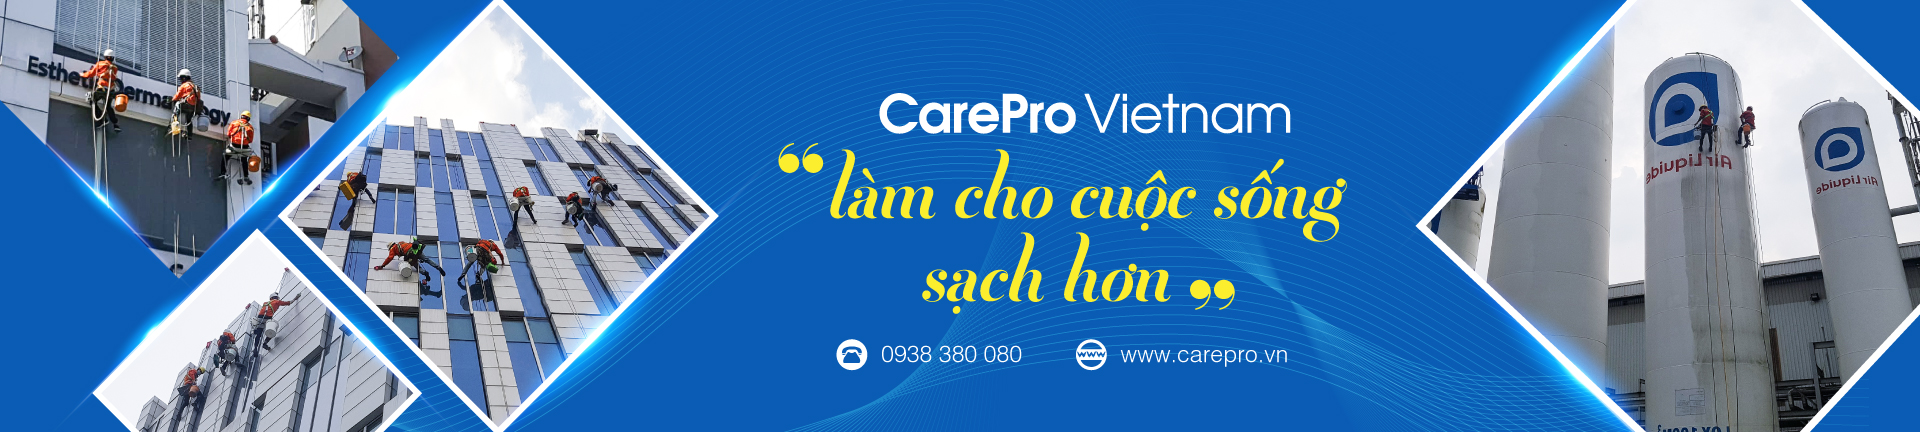 ve sinh cong nghiep carepro lam cho cuoc song sach se hon